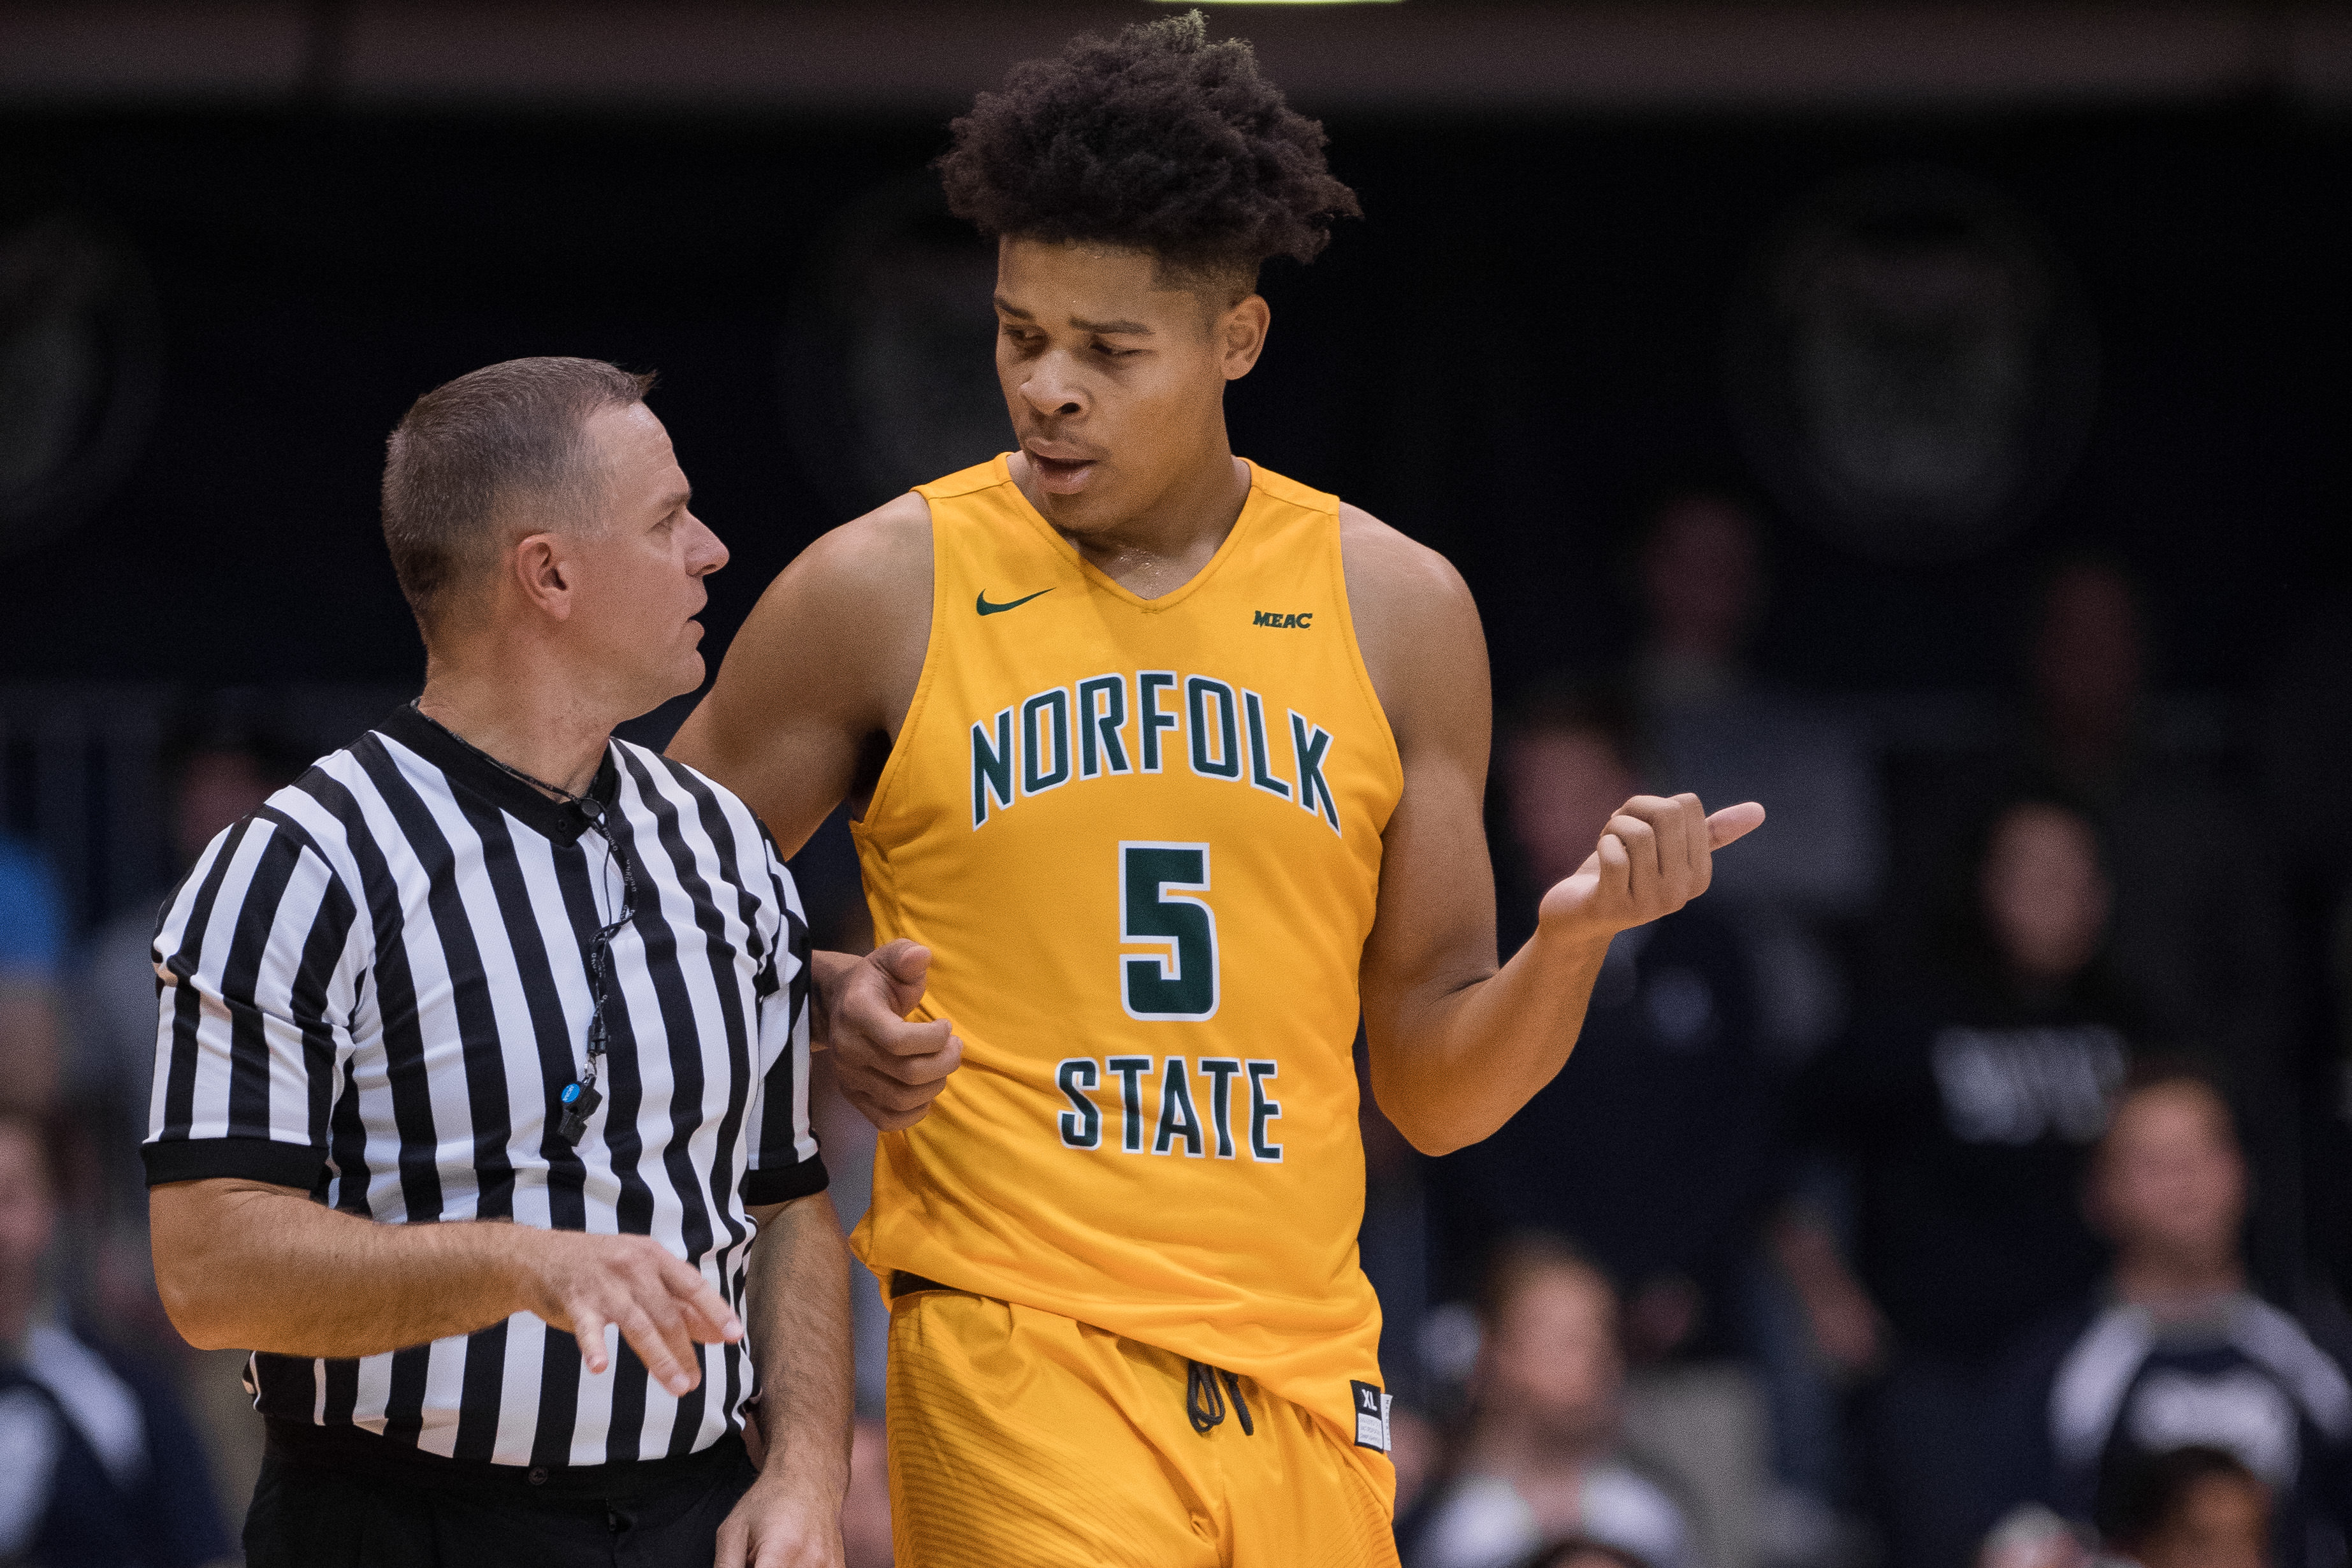 Norfolk State Spartans center Bryan Gellineau talks to a official during the NCAA men's basketball game between the Butler Bulldogs and Norfolk State Spartans on November 21, 2016, at Hinkle Fieldhouse in Indianapolis, IN.